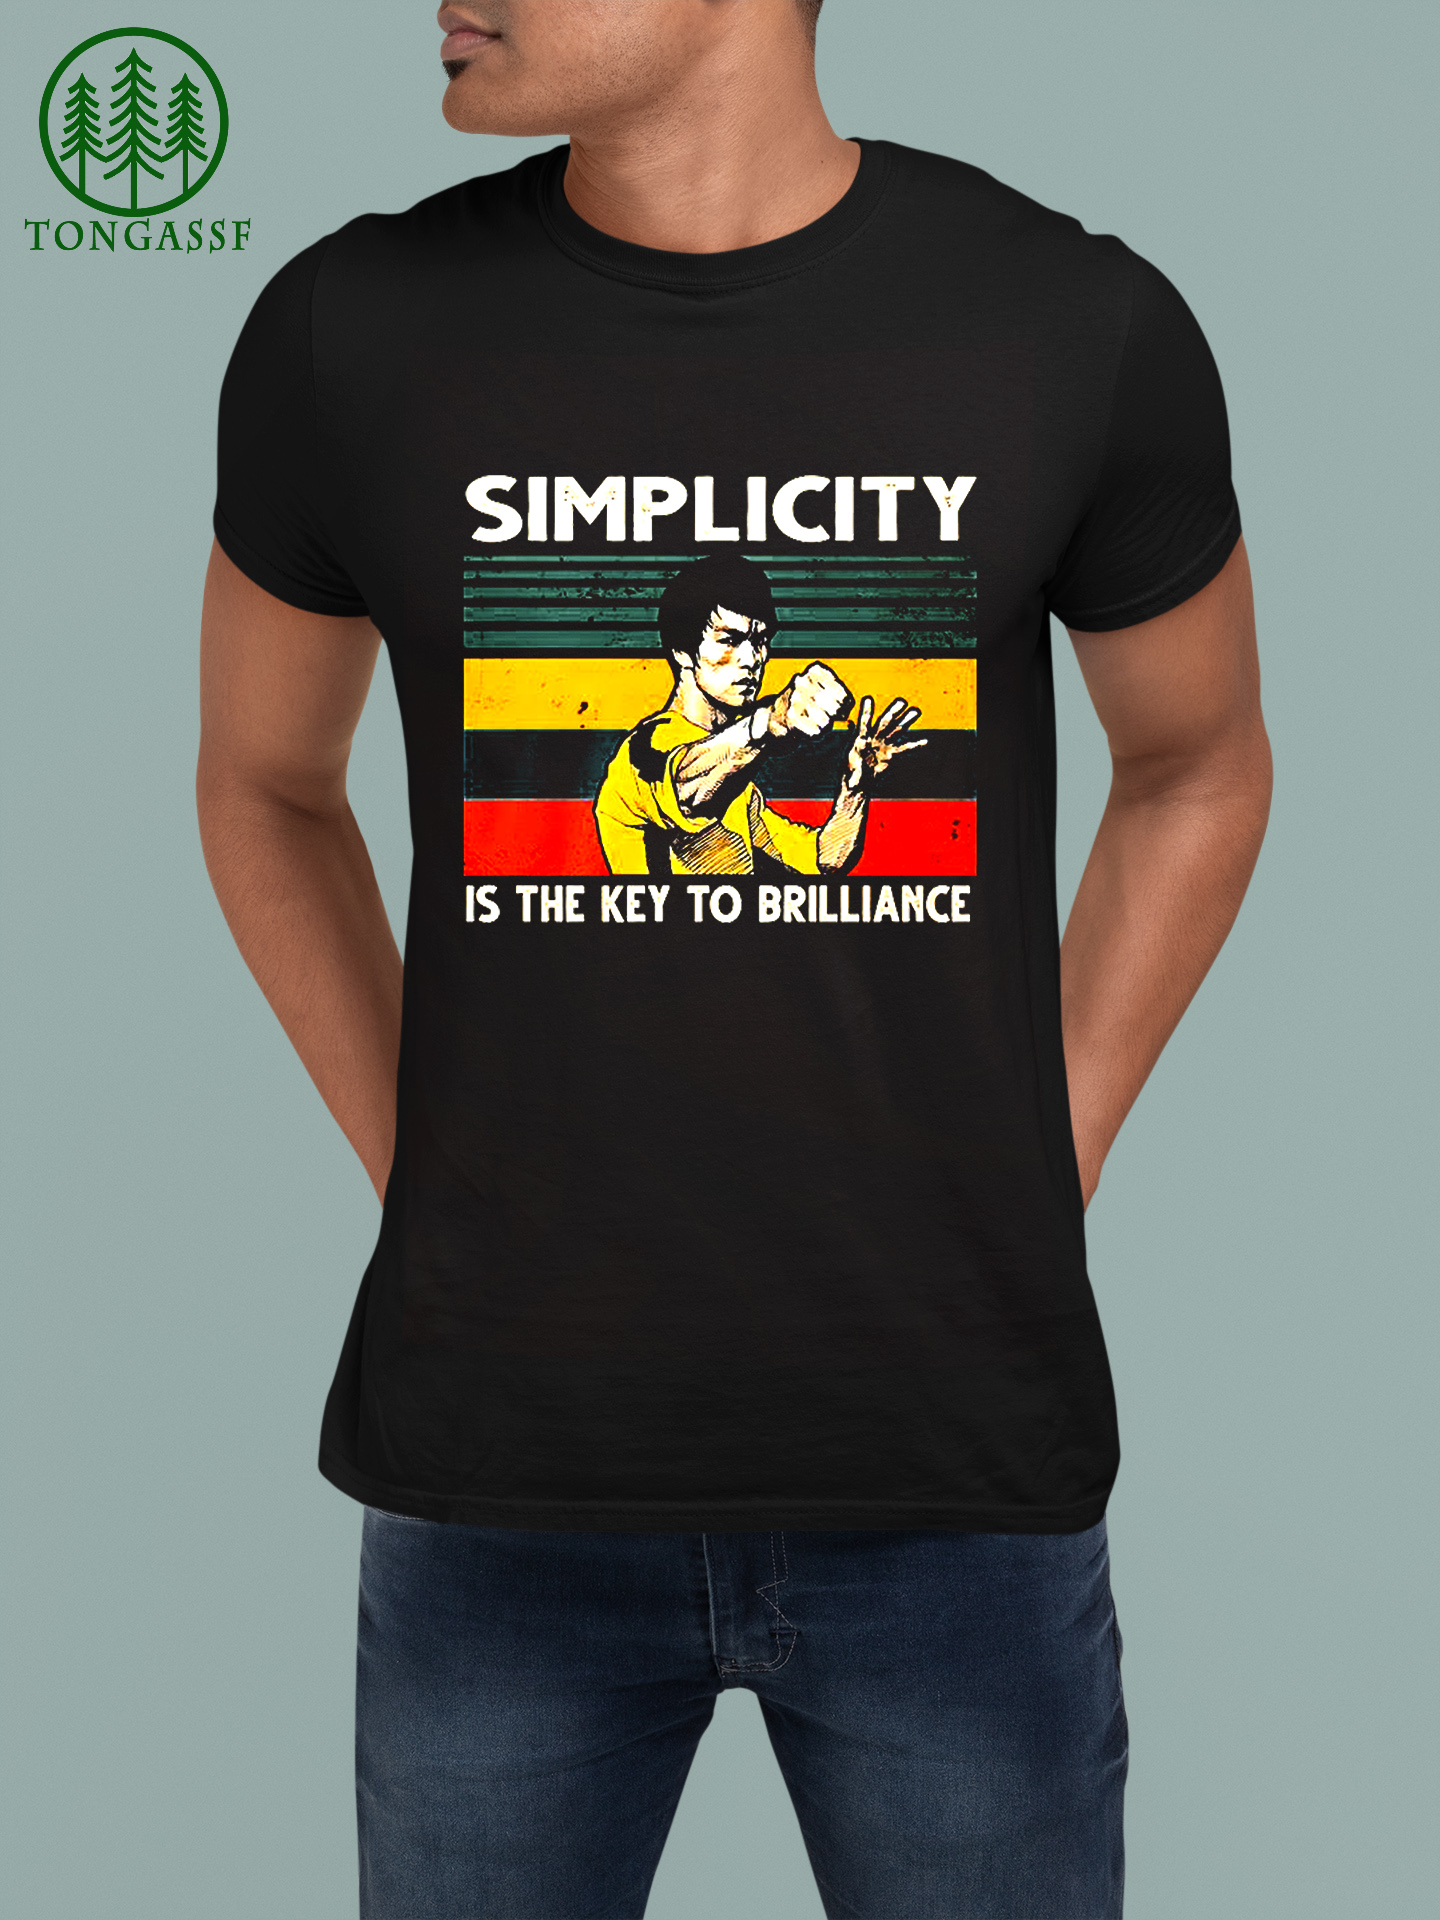 Simplicity is the key to brilliance shirt